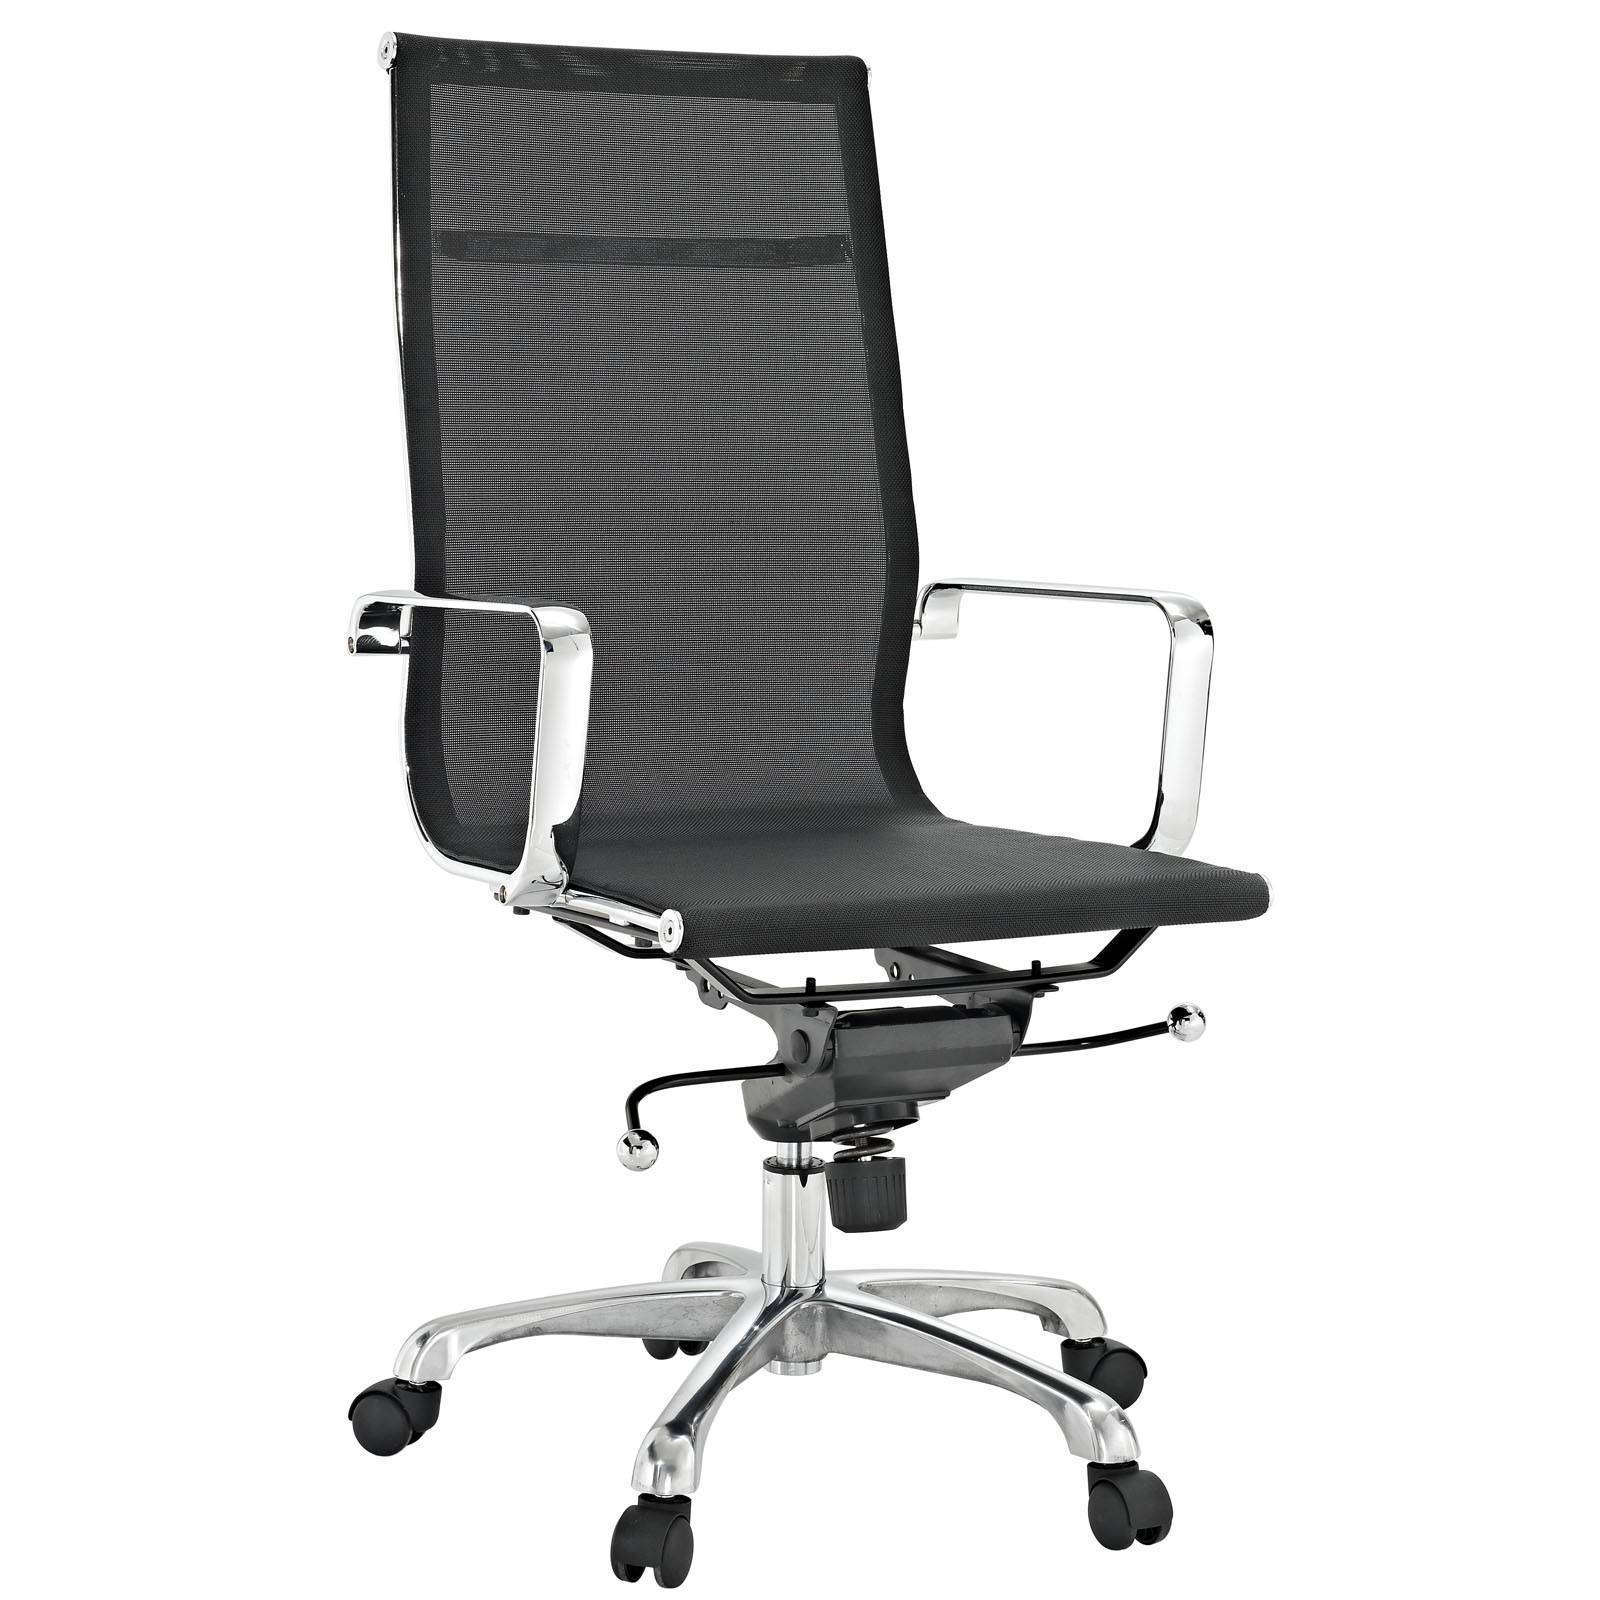 classic office chair. Classic Office Chair I